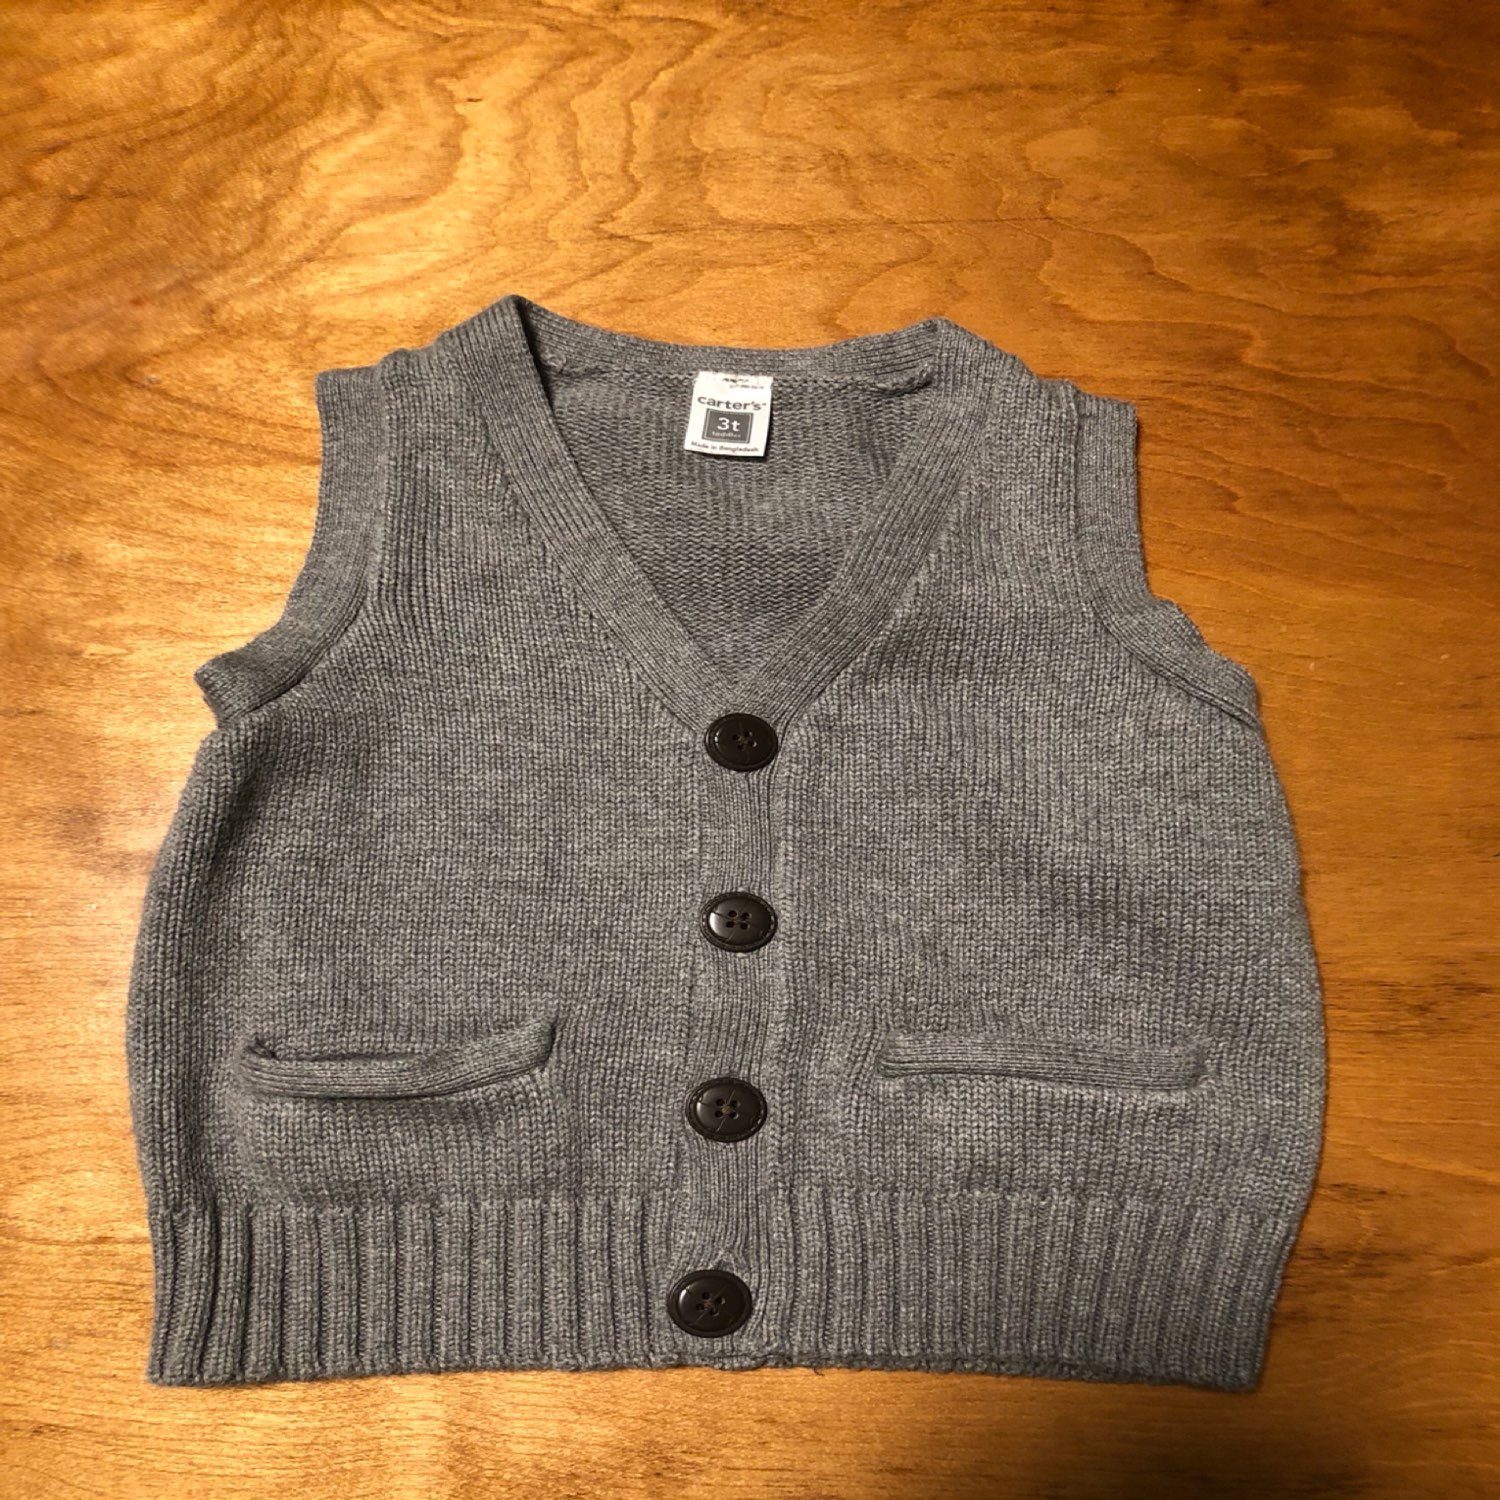 Boys CARTERS Sweater Vest 3T - Mercari: BUY & SELL THINGS YOU LOVE